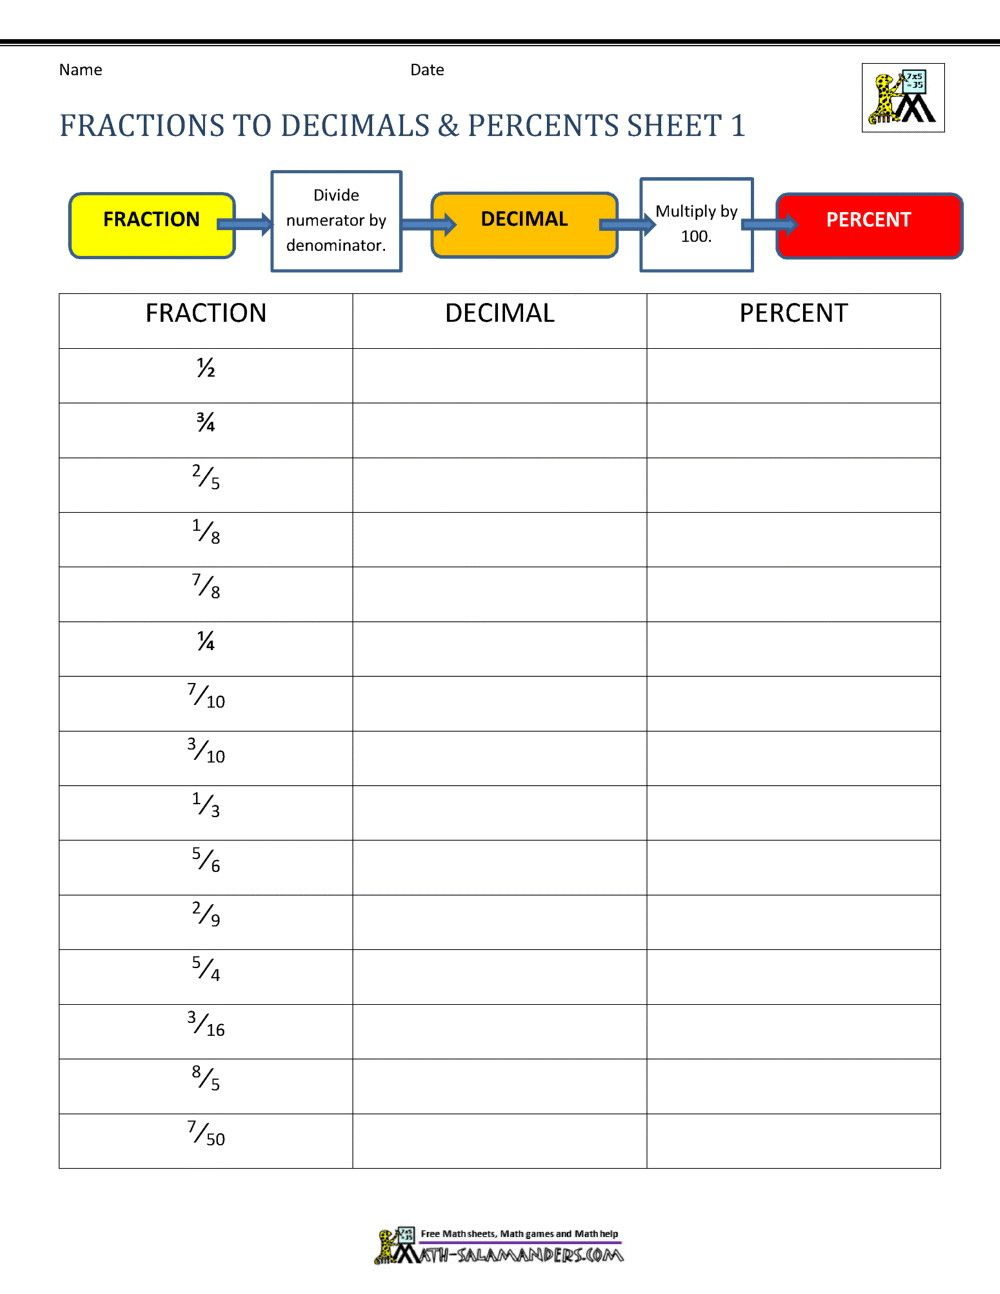 5 Converting Fractions Decimals And Percents Worksheets With